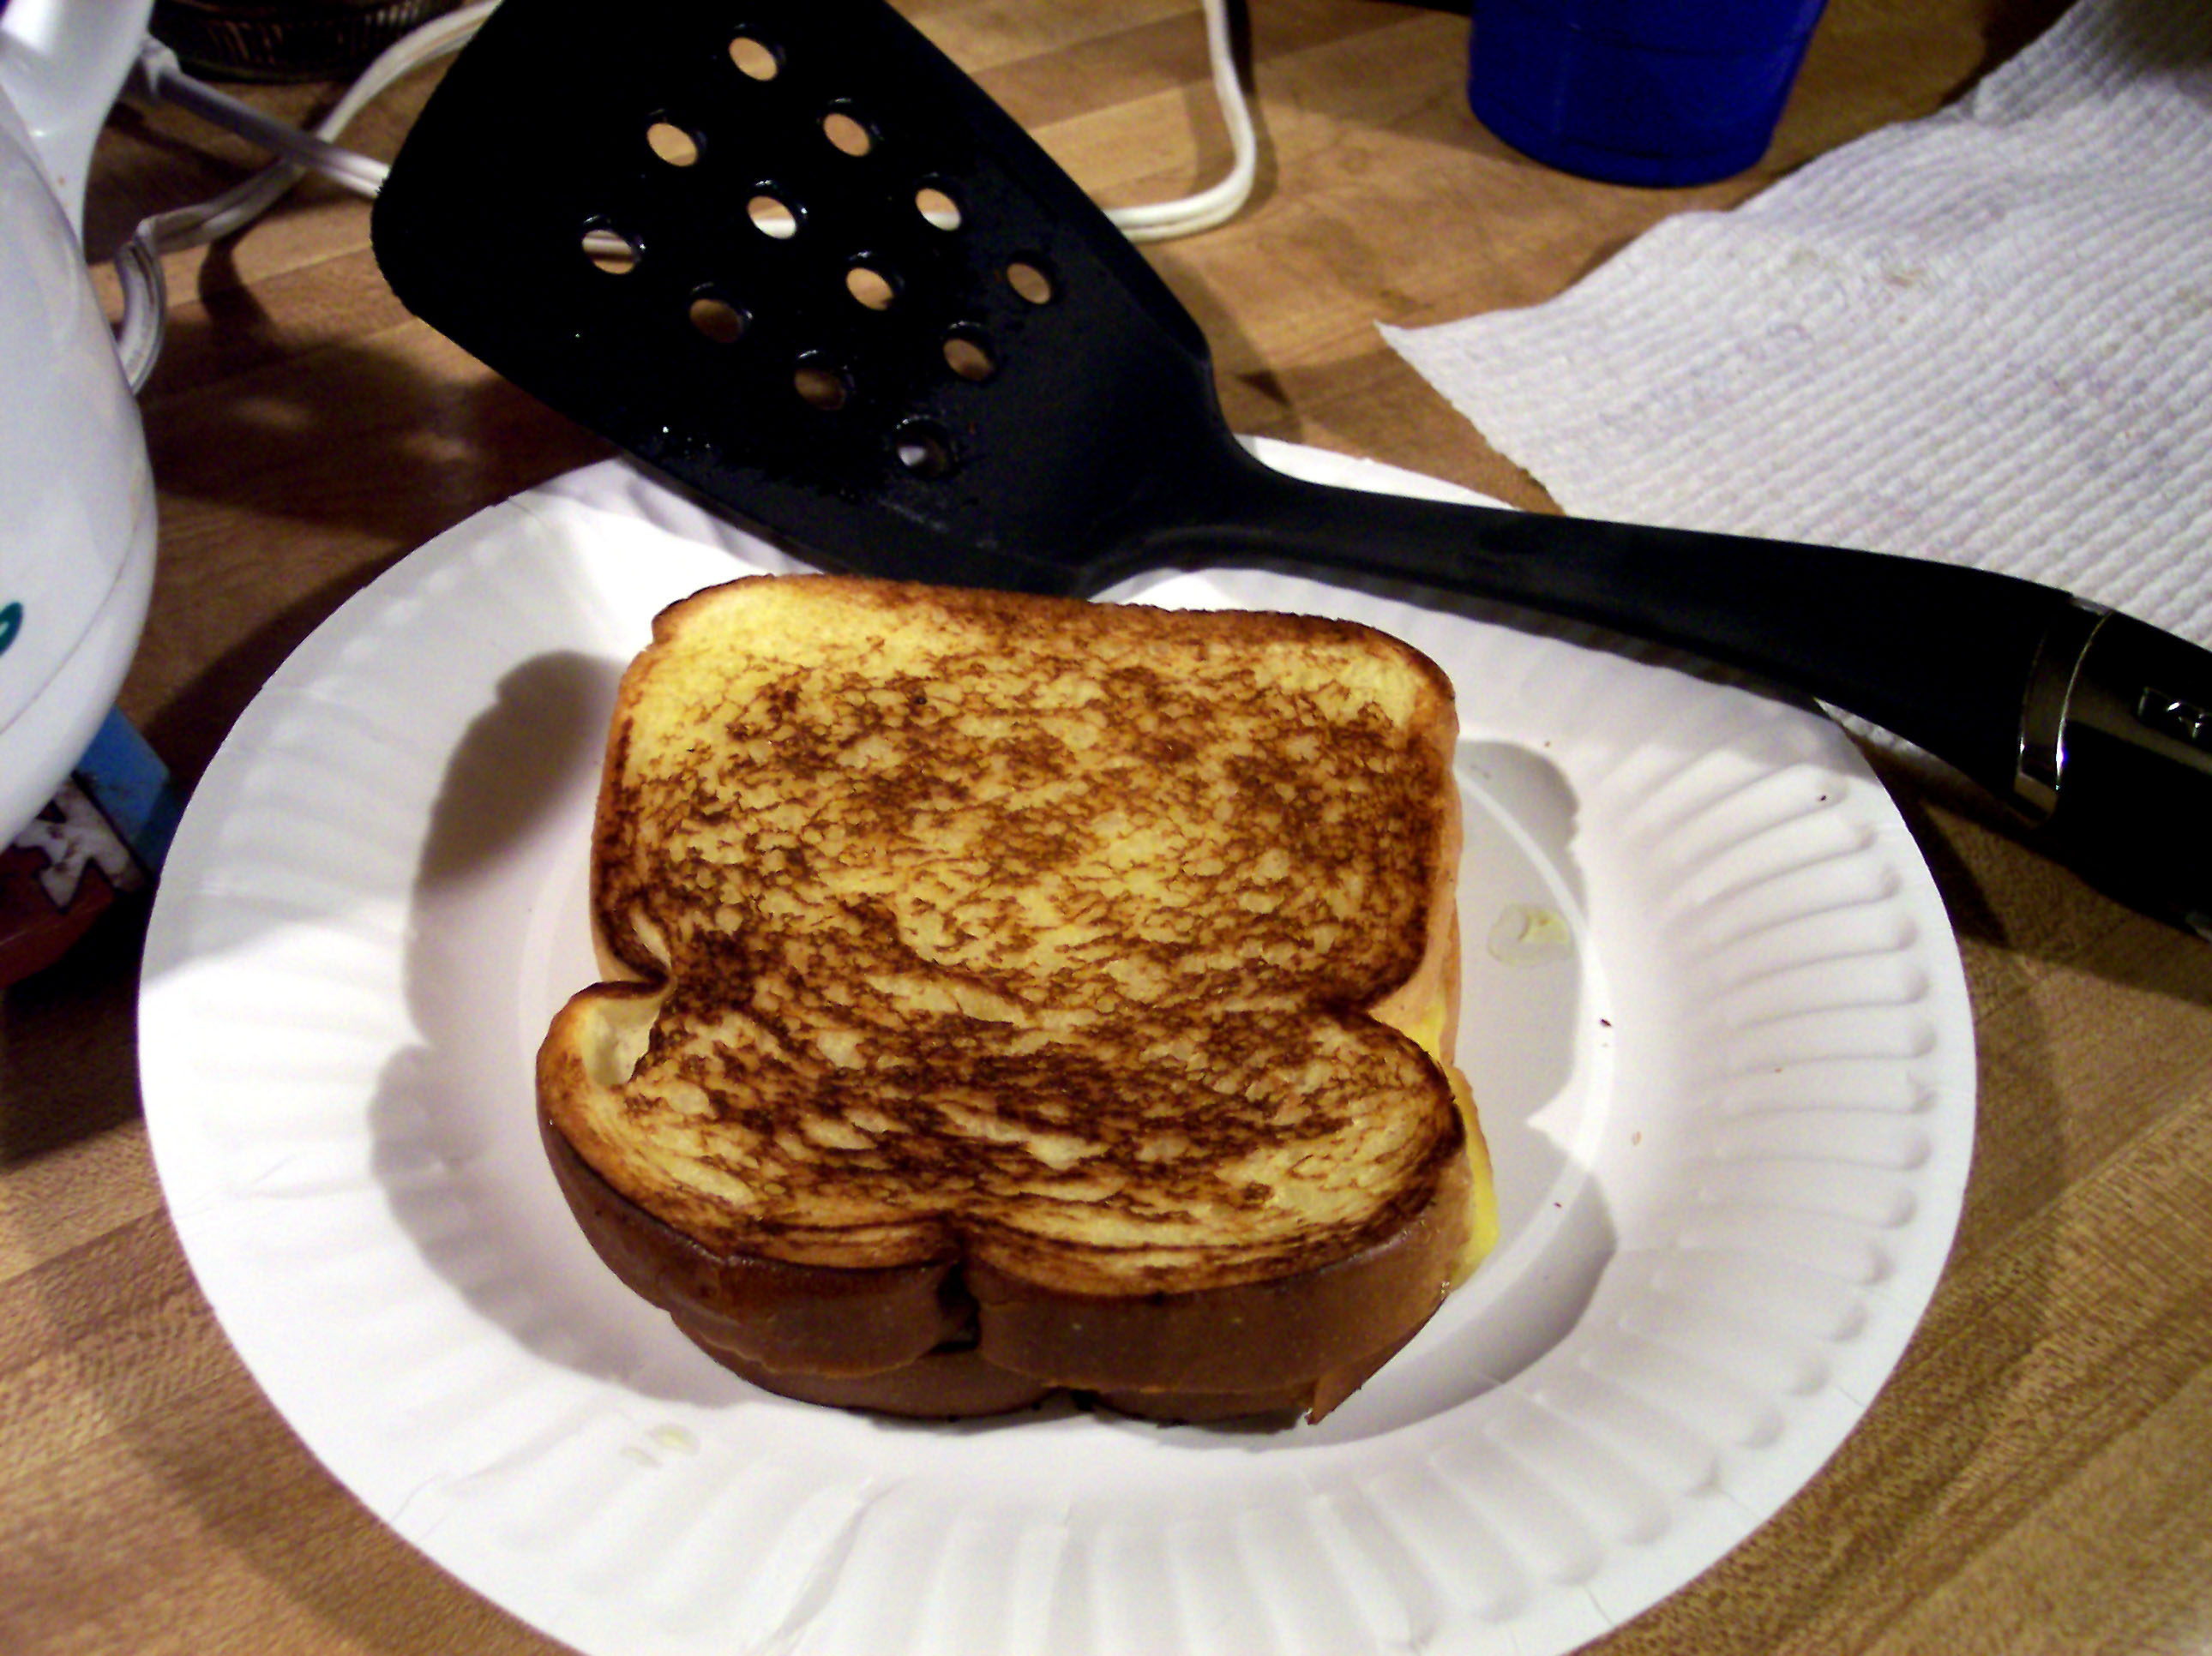 A grilled cheese sitting on a plate.